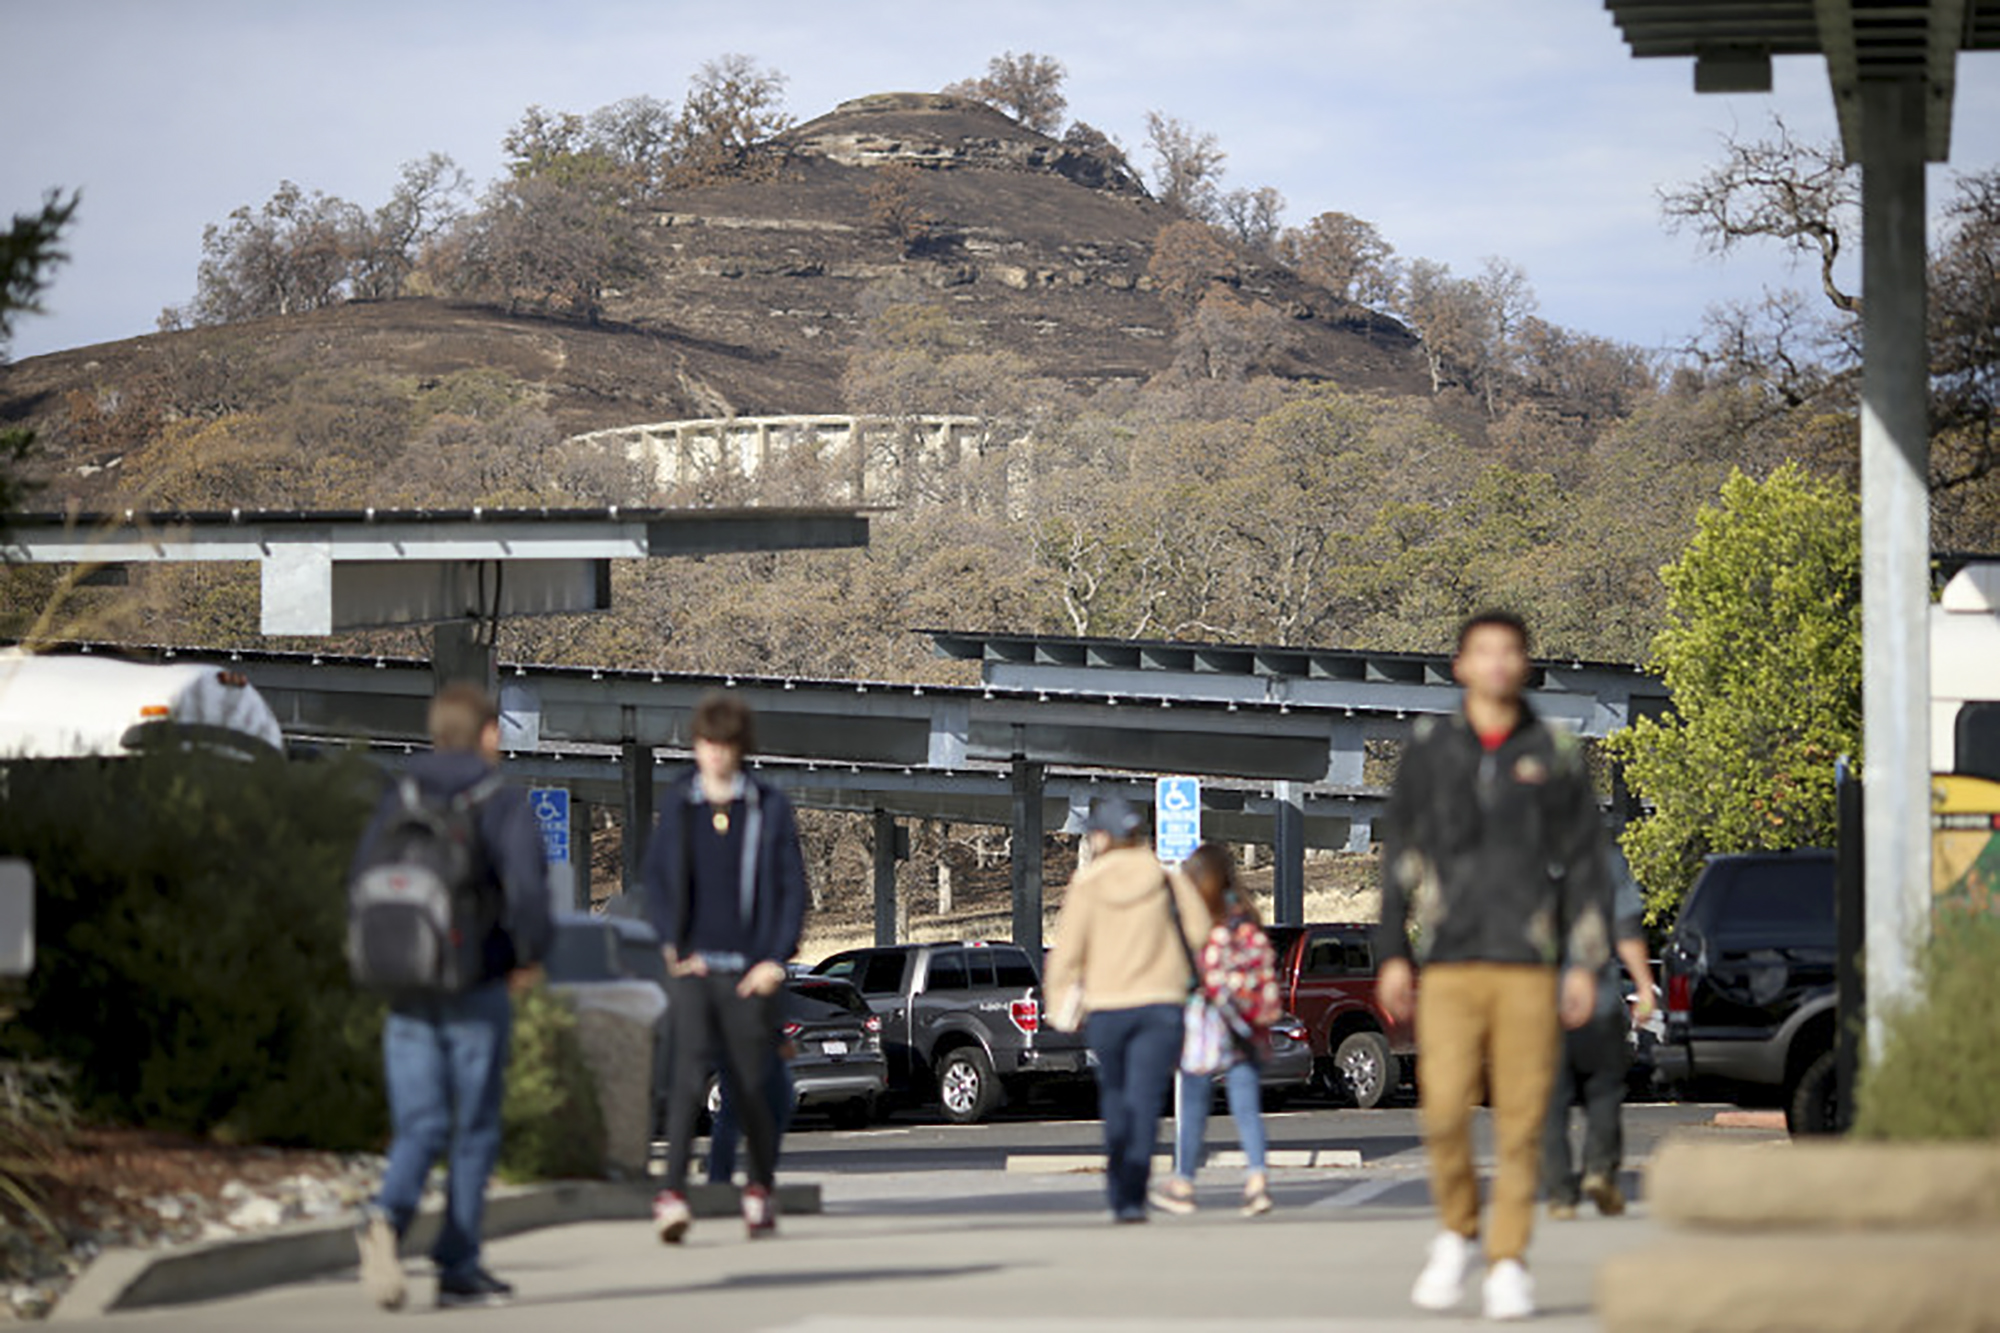 Butte College students walk onto campus as classes resume while a hillside behind the school shows just how close the wildfire got in Oroville, Calif., on Nov. 26, 2018. The community college had 431 students and 116 faculty and staff impacted by the Camp Fire. Photo by Anda Chu/Bay Area News Group